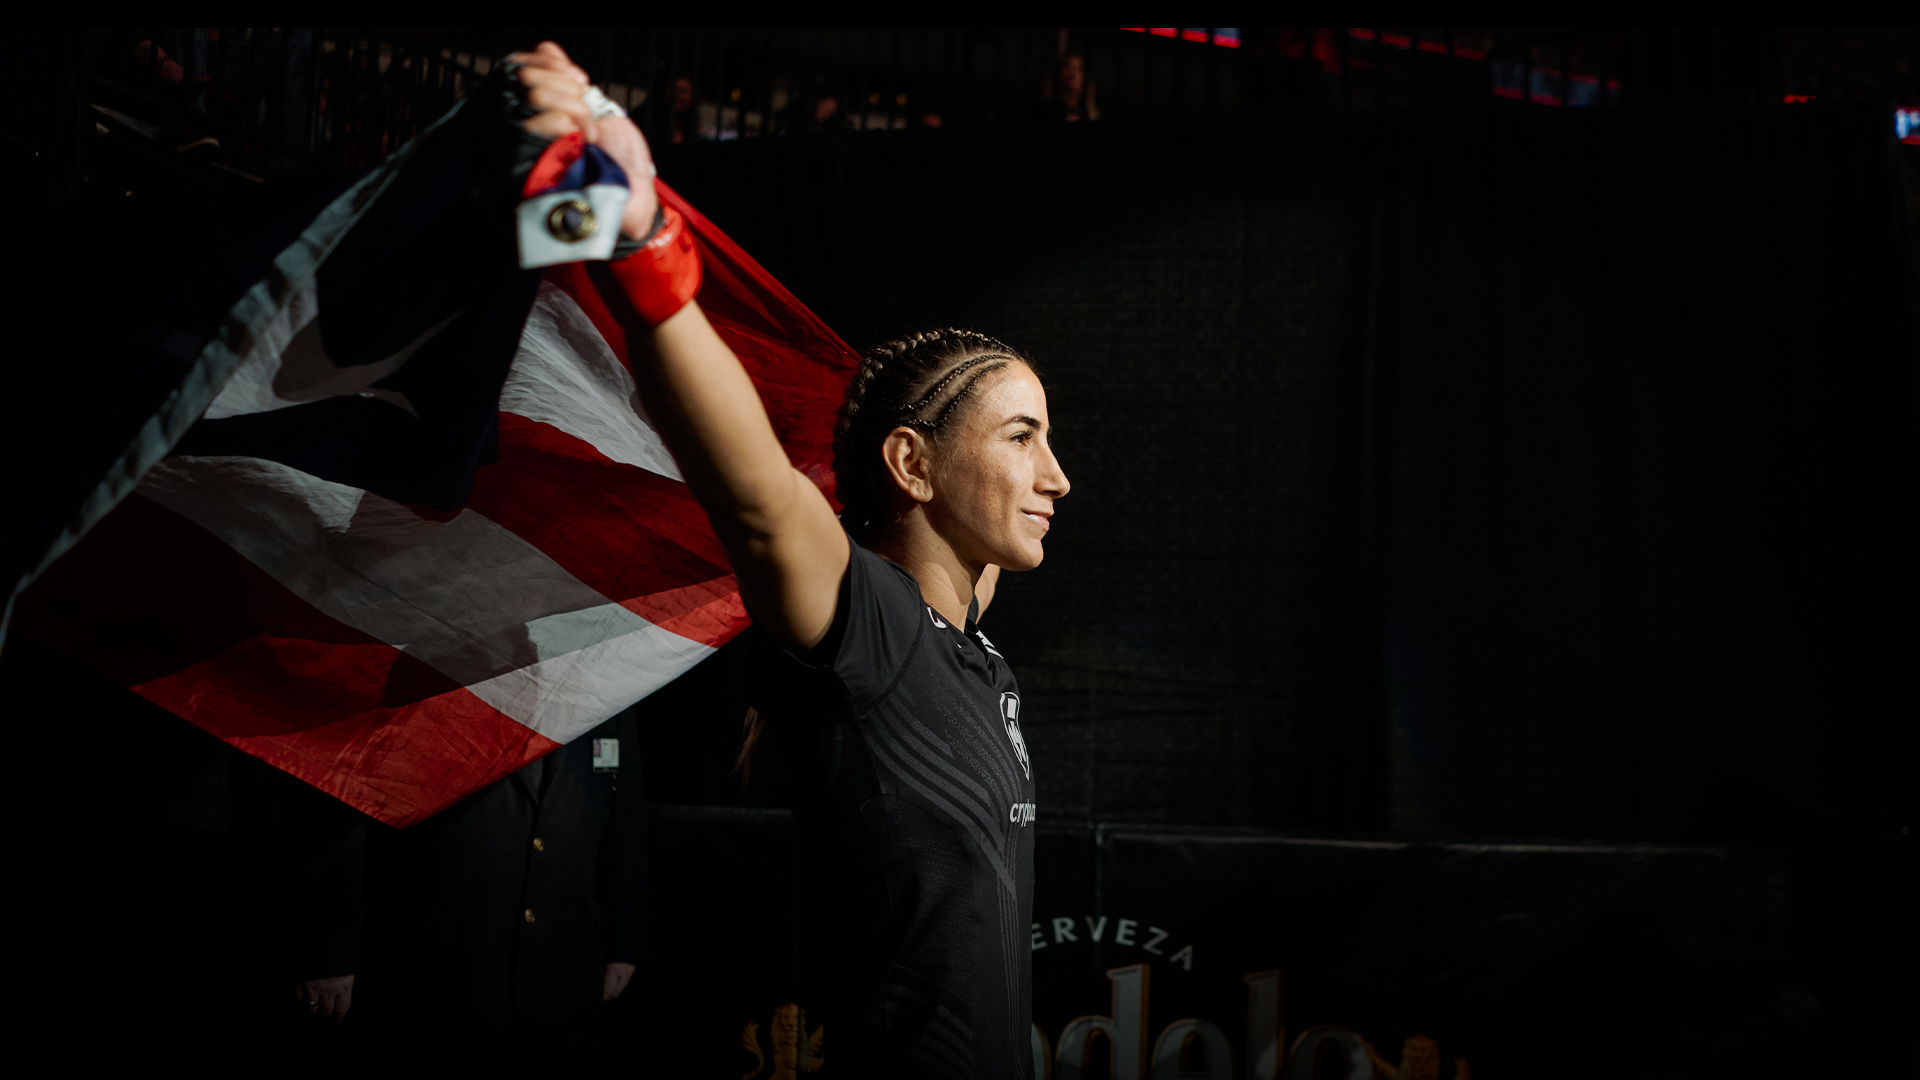 Tecia Torres walks out prior to her women's strawweight bout during the UFC 265 event at Toyota Center on August 07, 2021 in Houston, Texas. (Photo by Cooper Neill/Zuffa LLC)